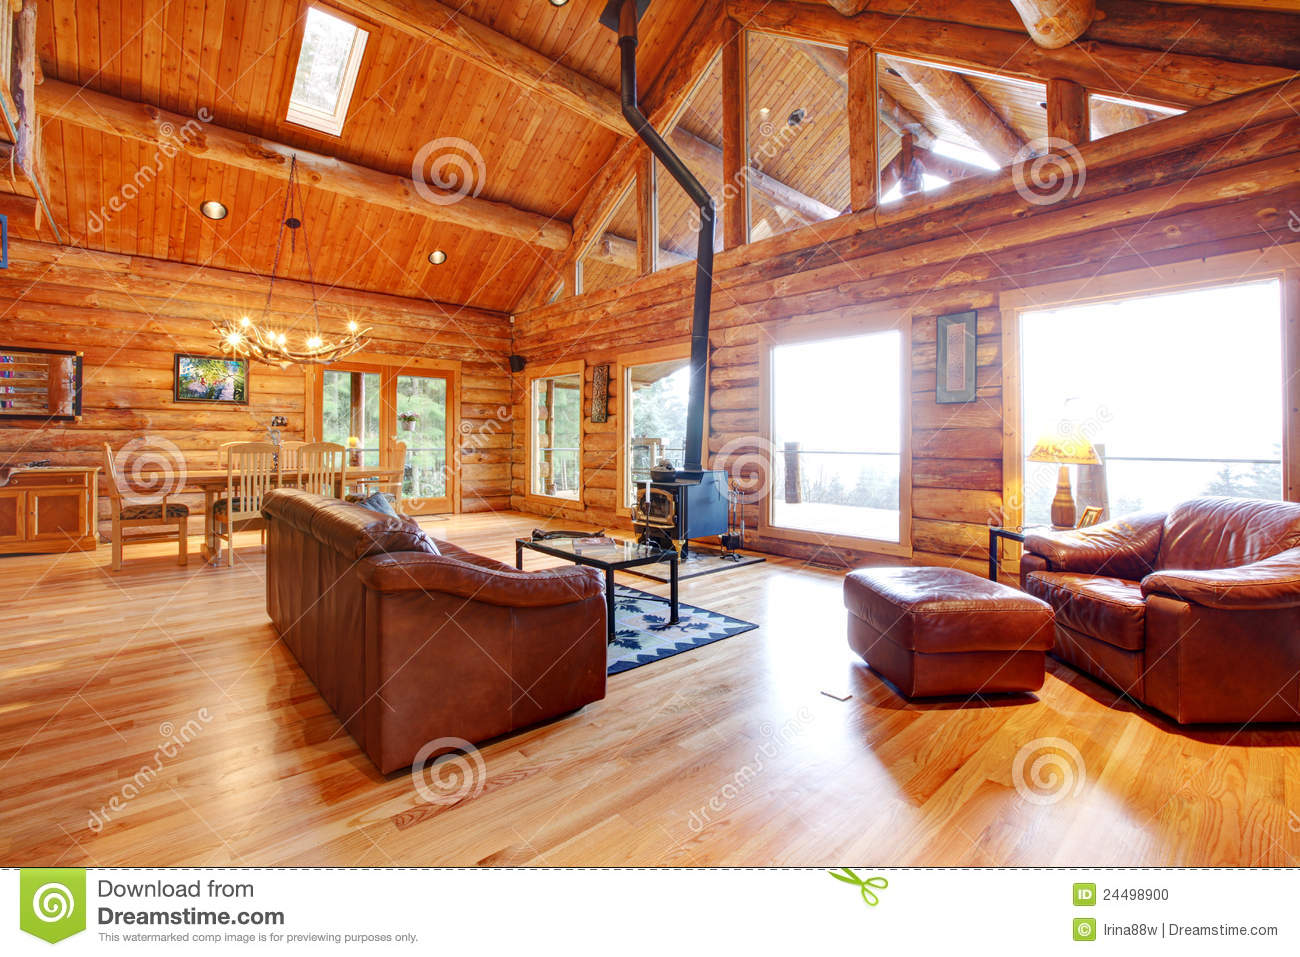 Luxury Log Cabin Living Room With Leather Sofa. Stock Photo - Image ...